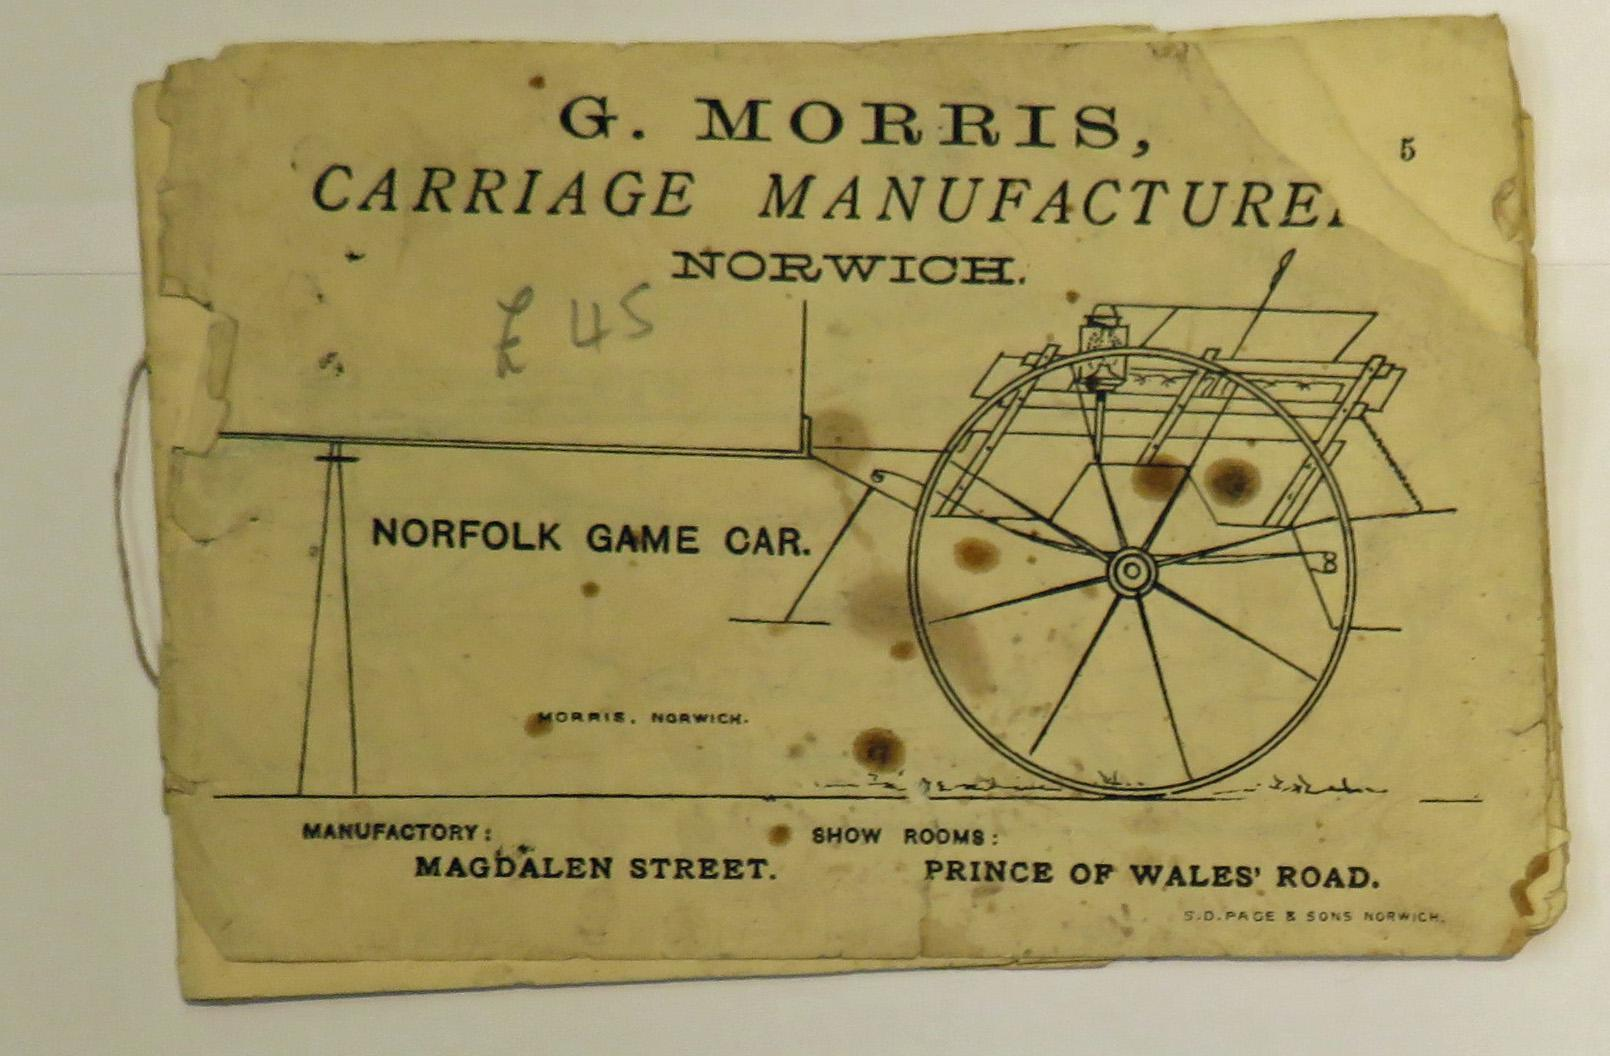 G. Morris Carriage Manufacturer